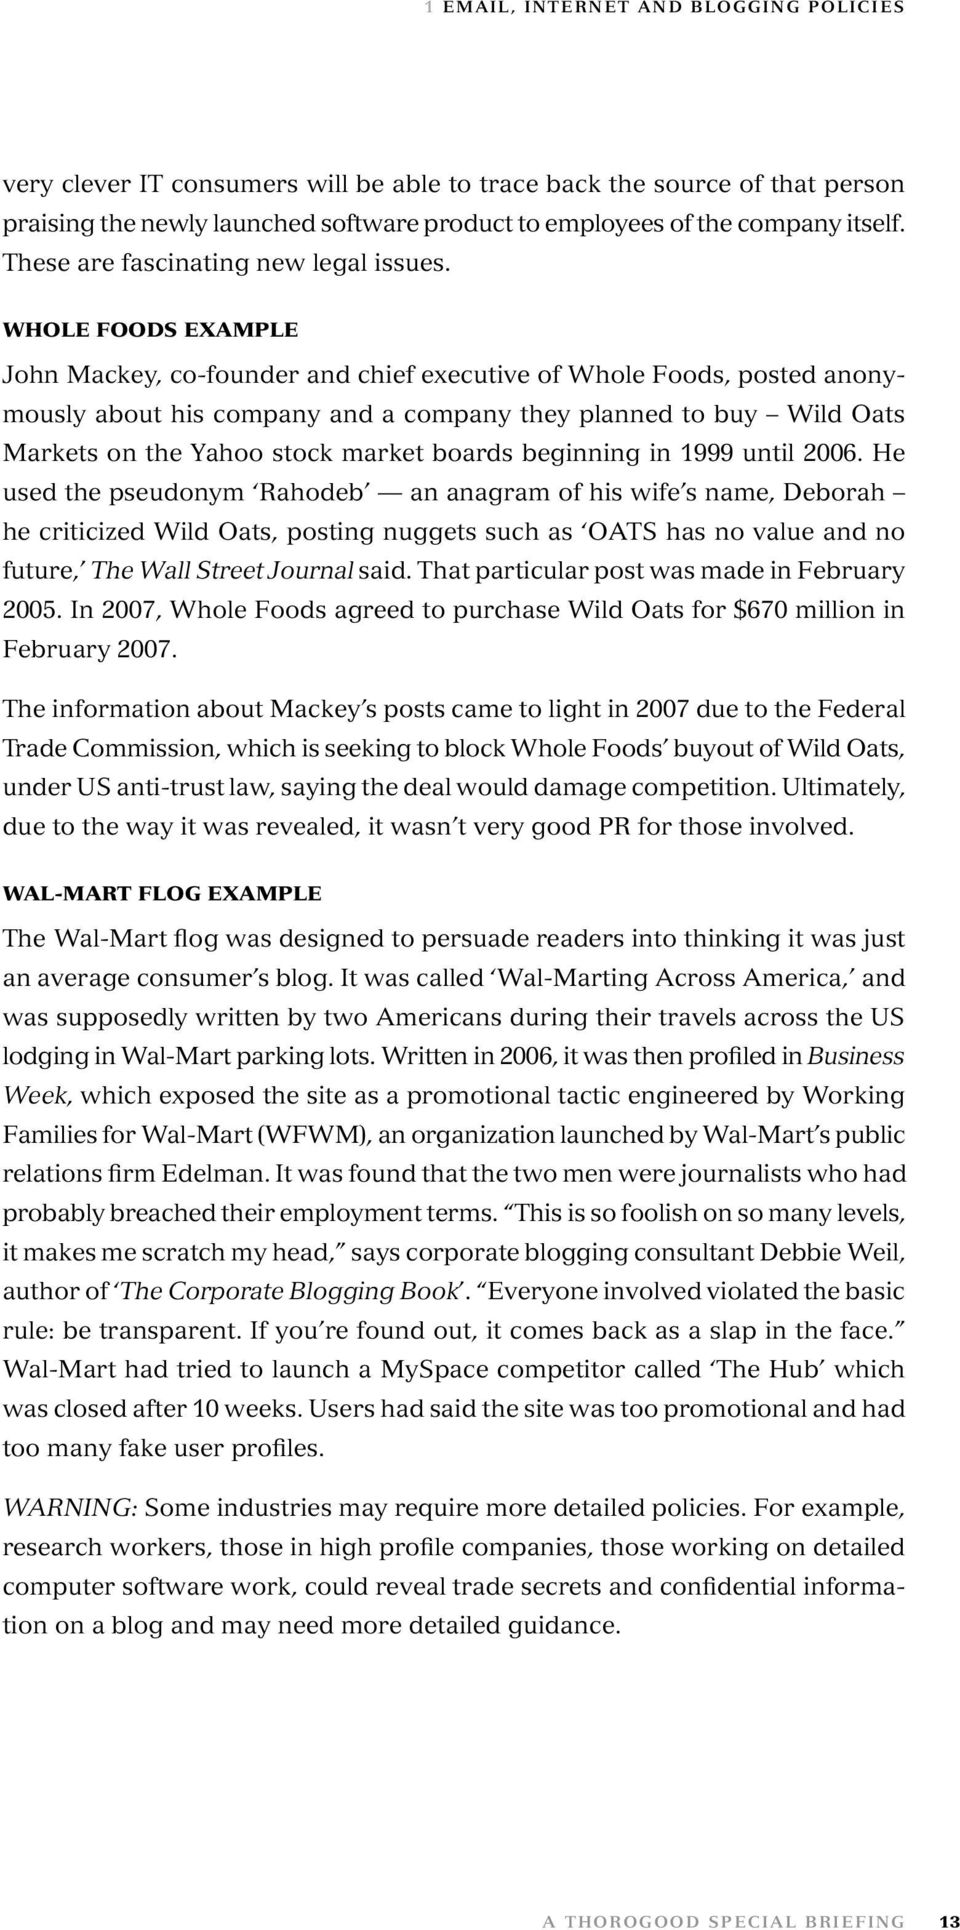 WHOLE FOODS EXAMPLE John Mackey, co-founder and chief executive of Whole Foods, posted anonymously about his company and a company they planned to buy Wild Oats Markets on the Yahoo stock market